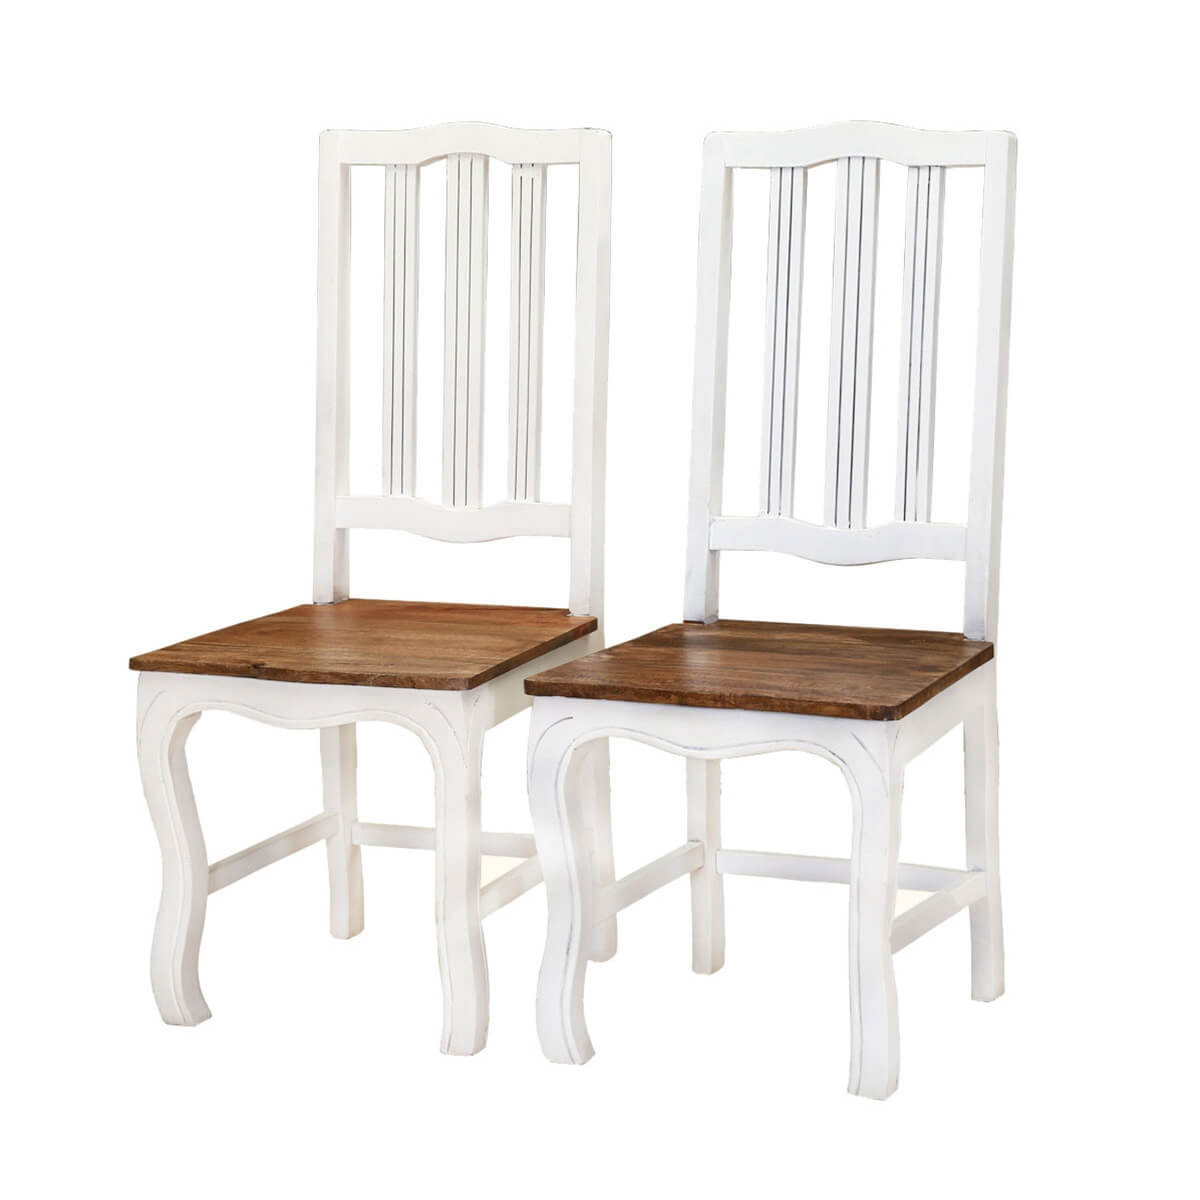 Groovy Rehoboth White And Natural Wood Cabriole Dining Chairs Set Of 2 Ibusinesslaw Wood Chair Design Ideas Ibusinesslaworg